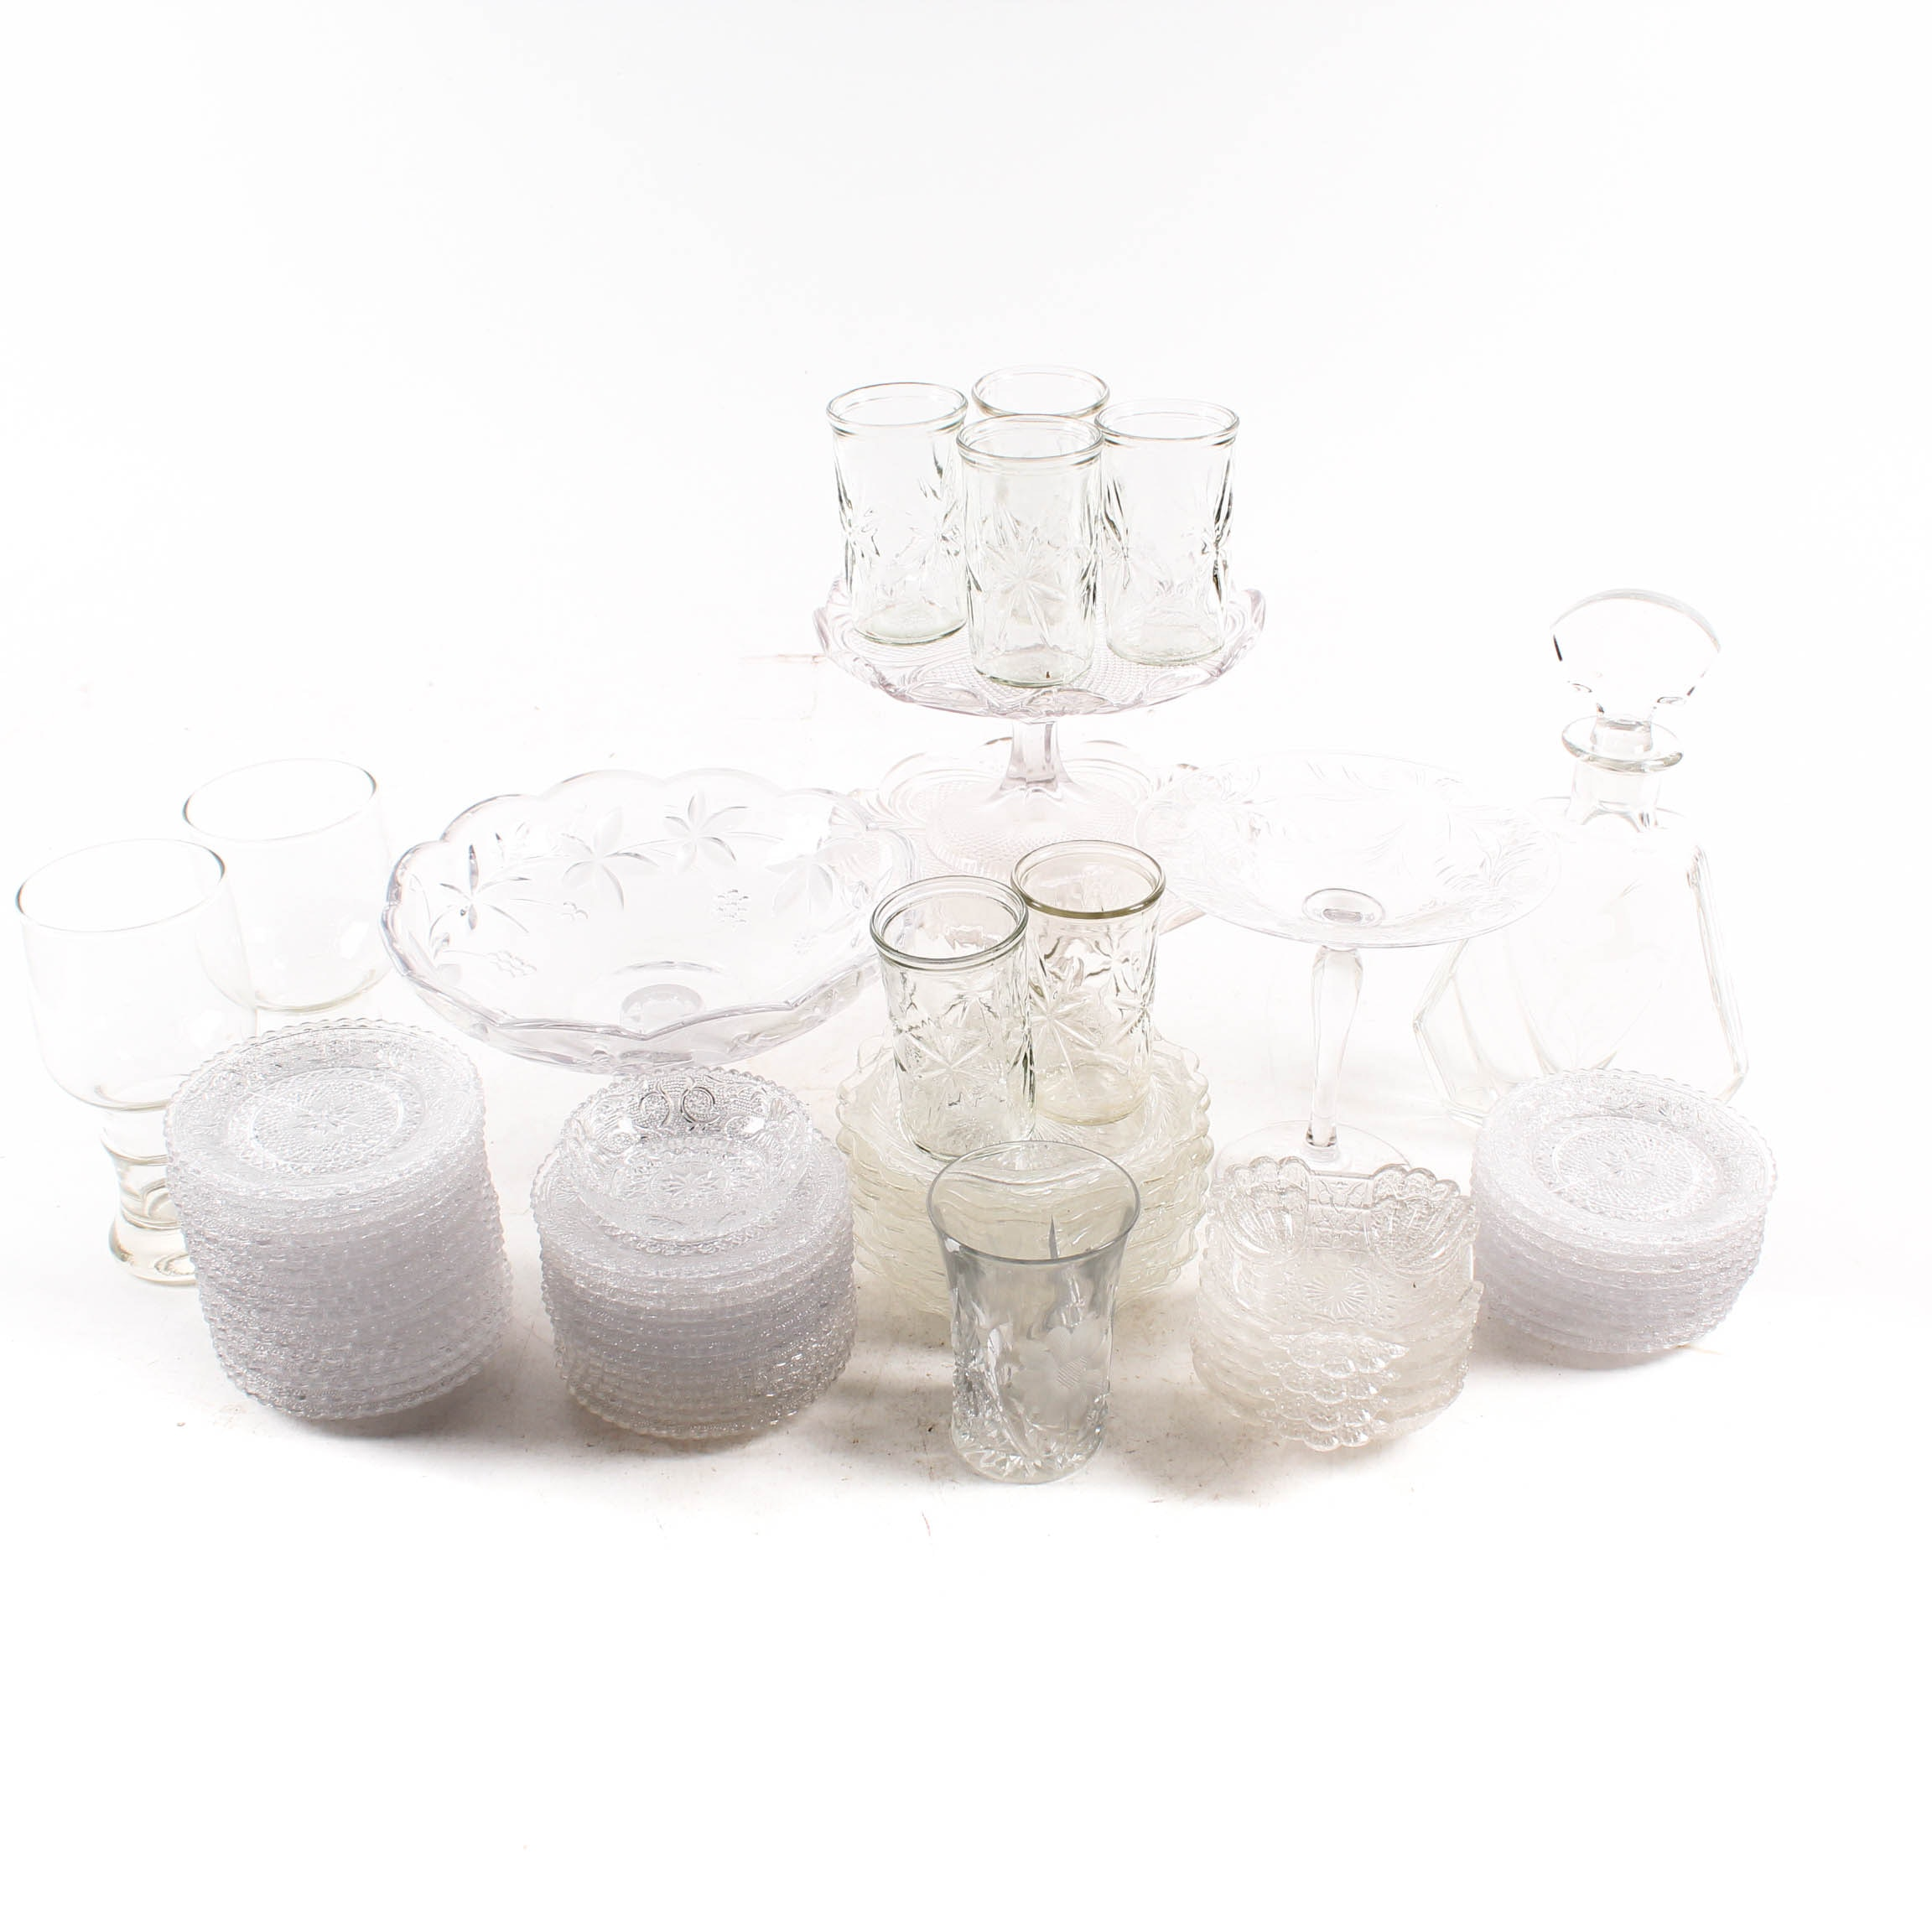 Vintage Clear Pressed Glass Tableware and Serving Pieces